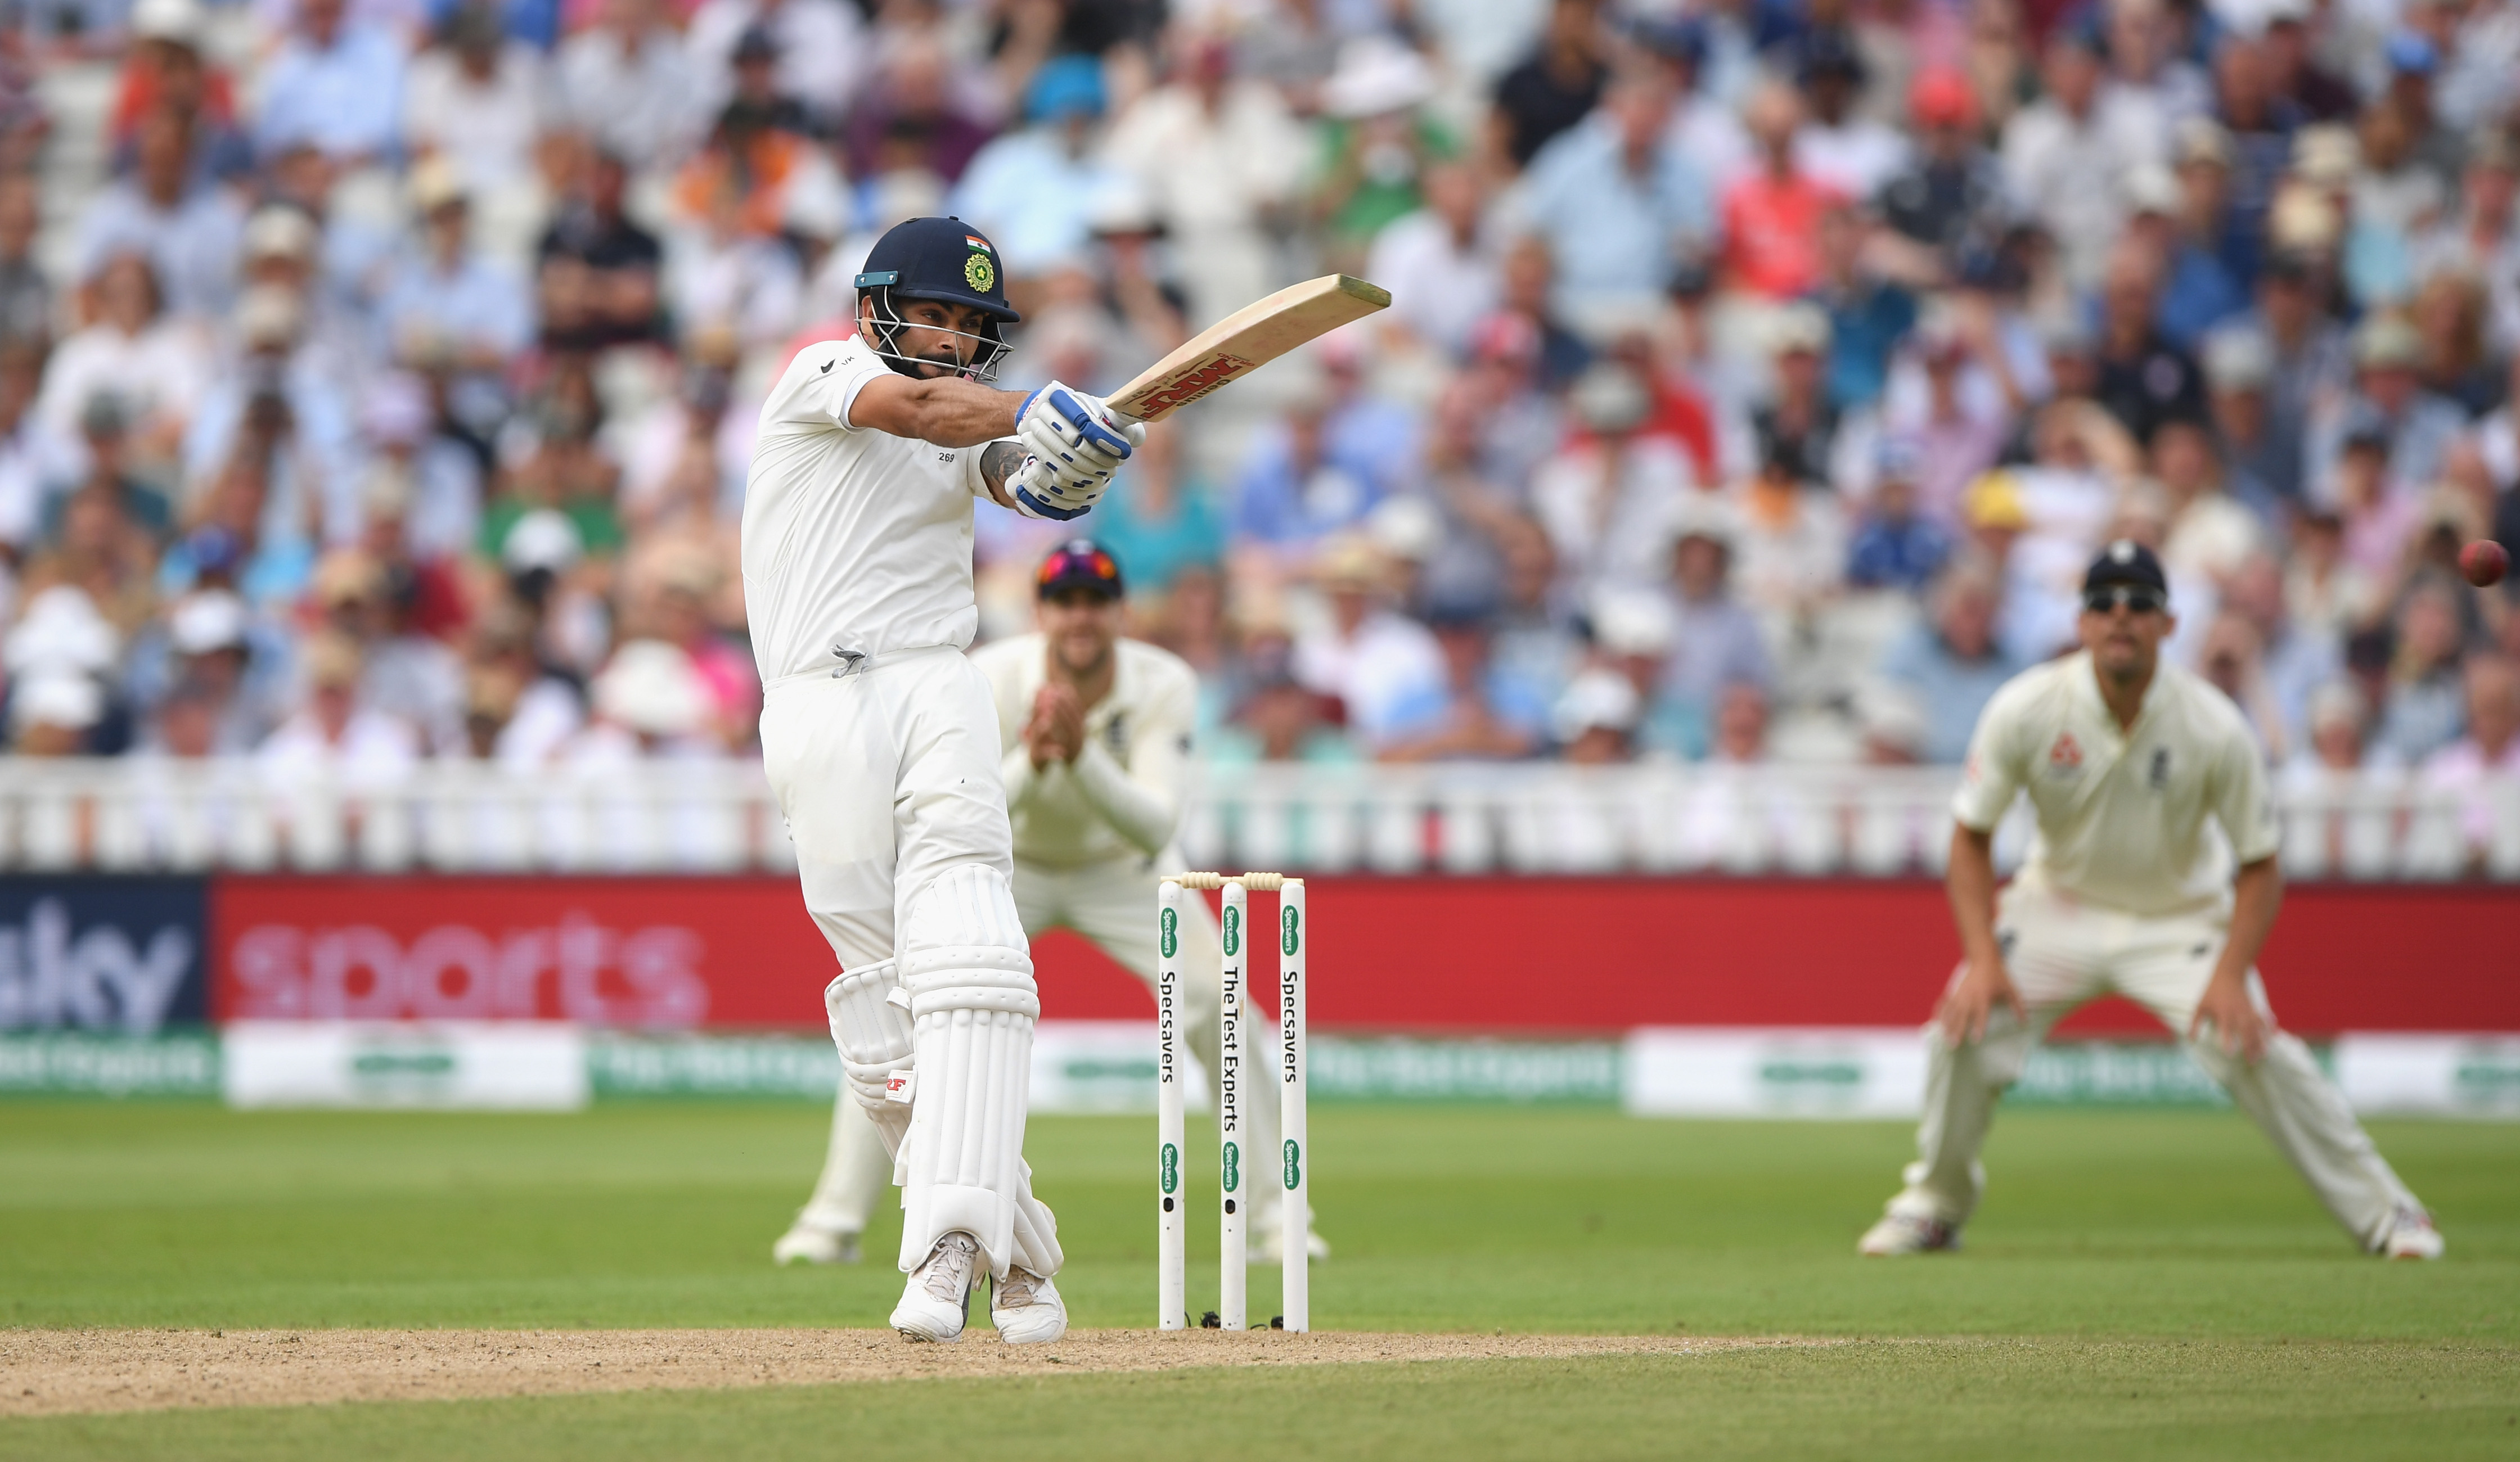 Virat scored a magnificent 149 on Day 2 of the Edgbaston Test. (Getty)